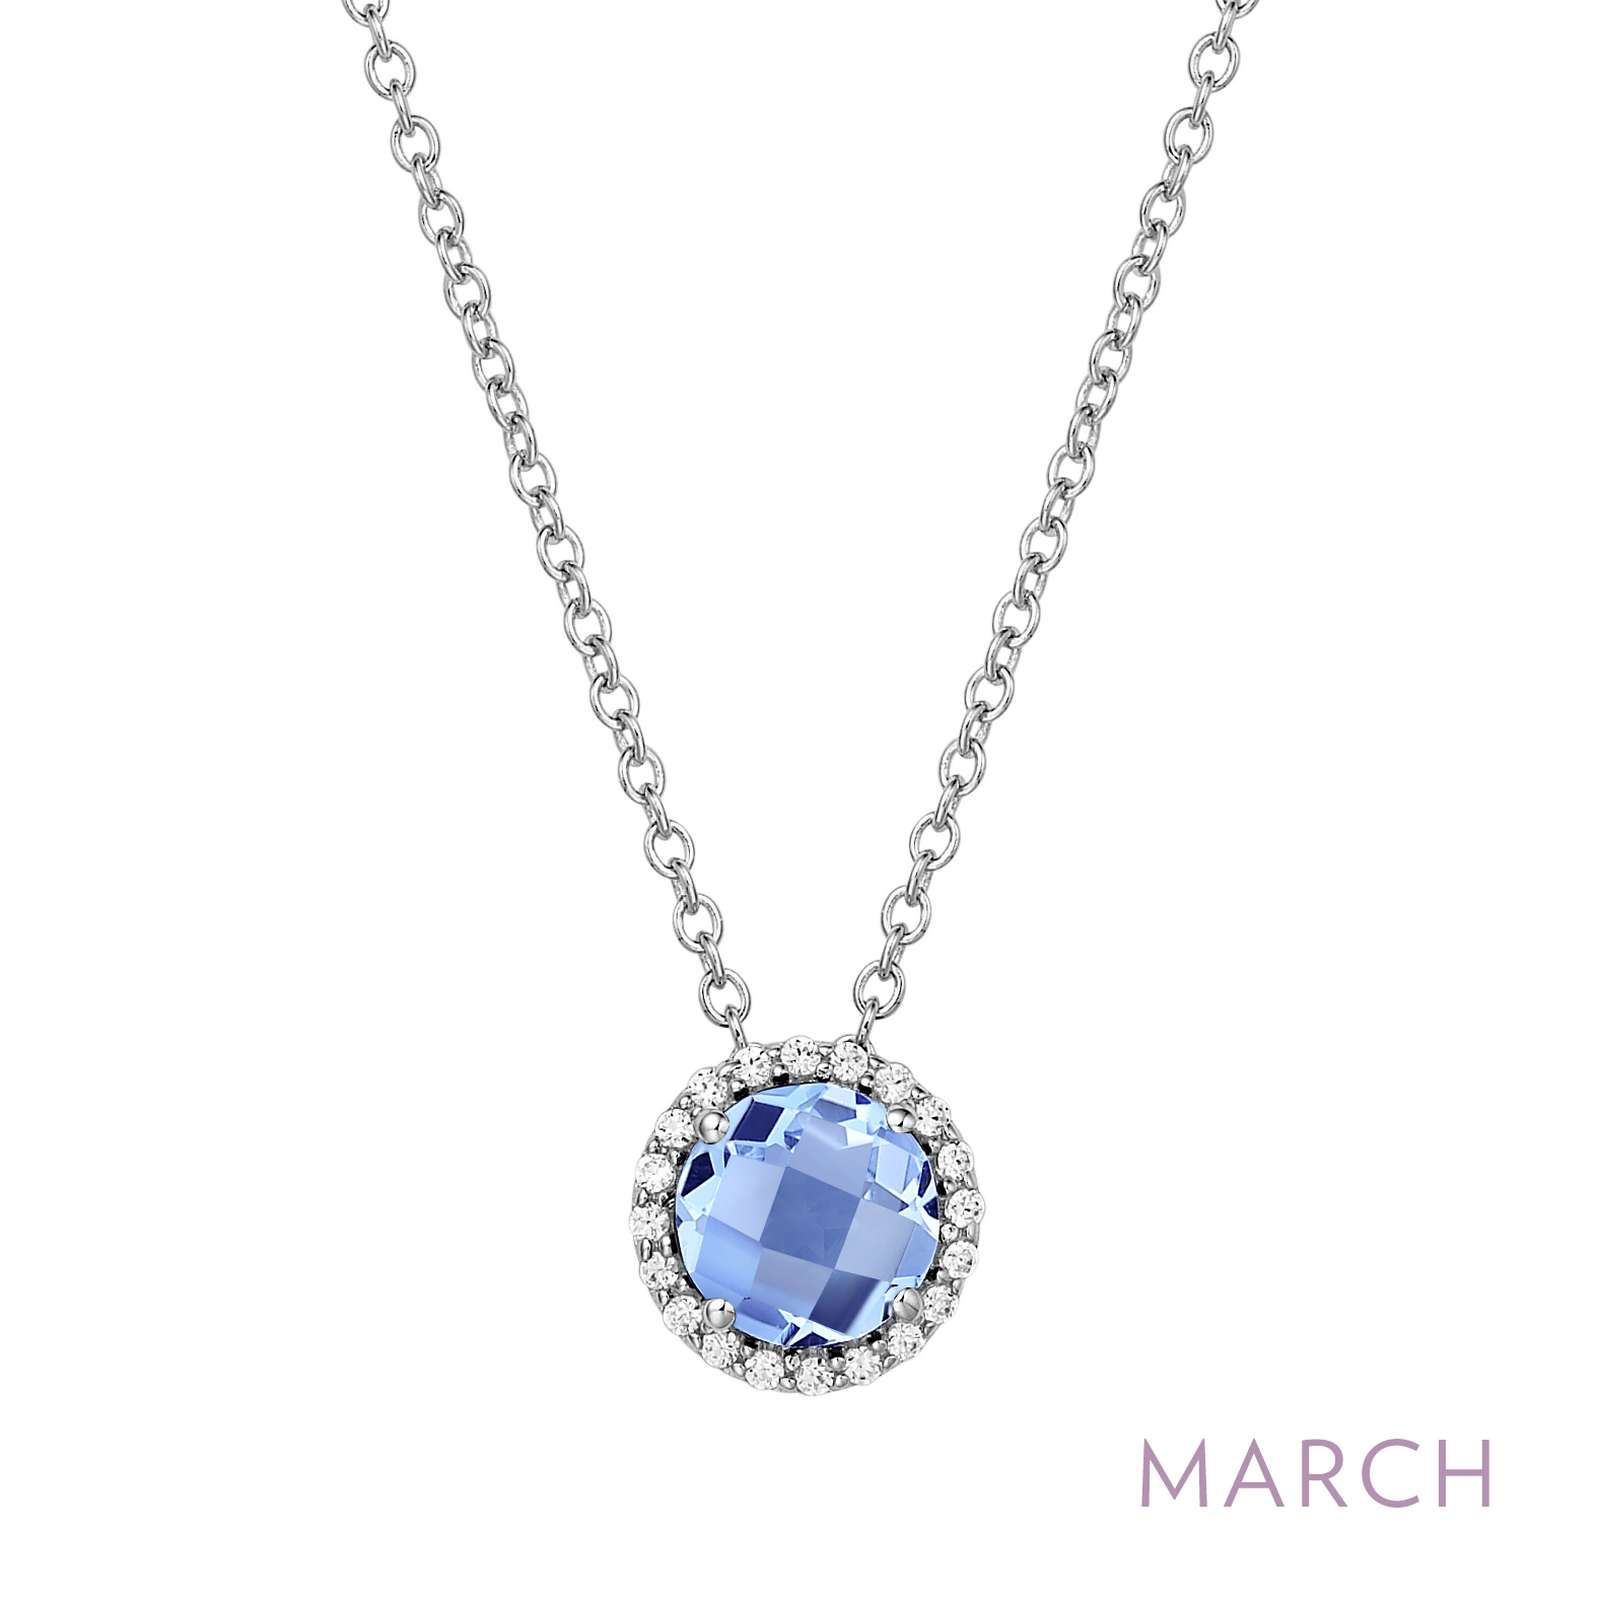 March - Aquamarine. Adorn yourself with Lafonn's birthstone jewelry. The necklace set with a simulated aquamarine surrounded by Lafonn's signature Lassaire simulated diamonds in sterling silver bonded with platinum.